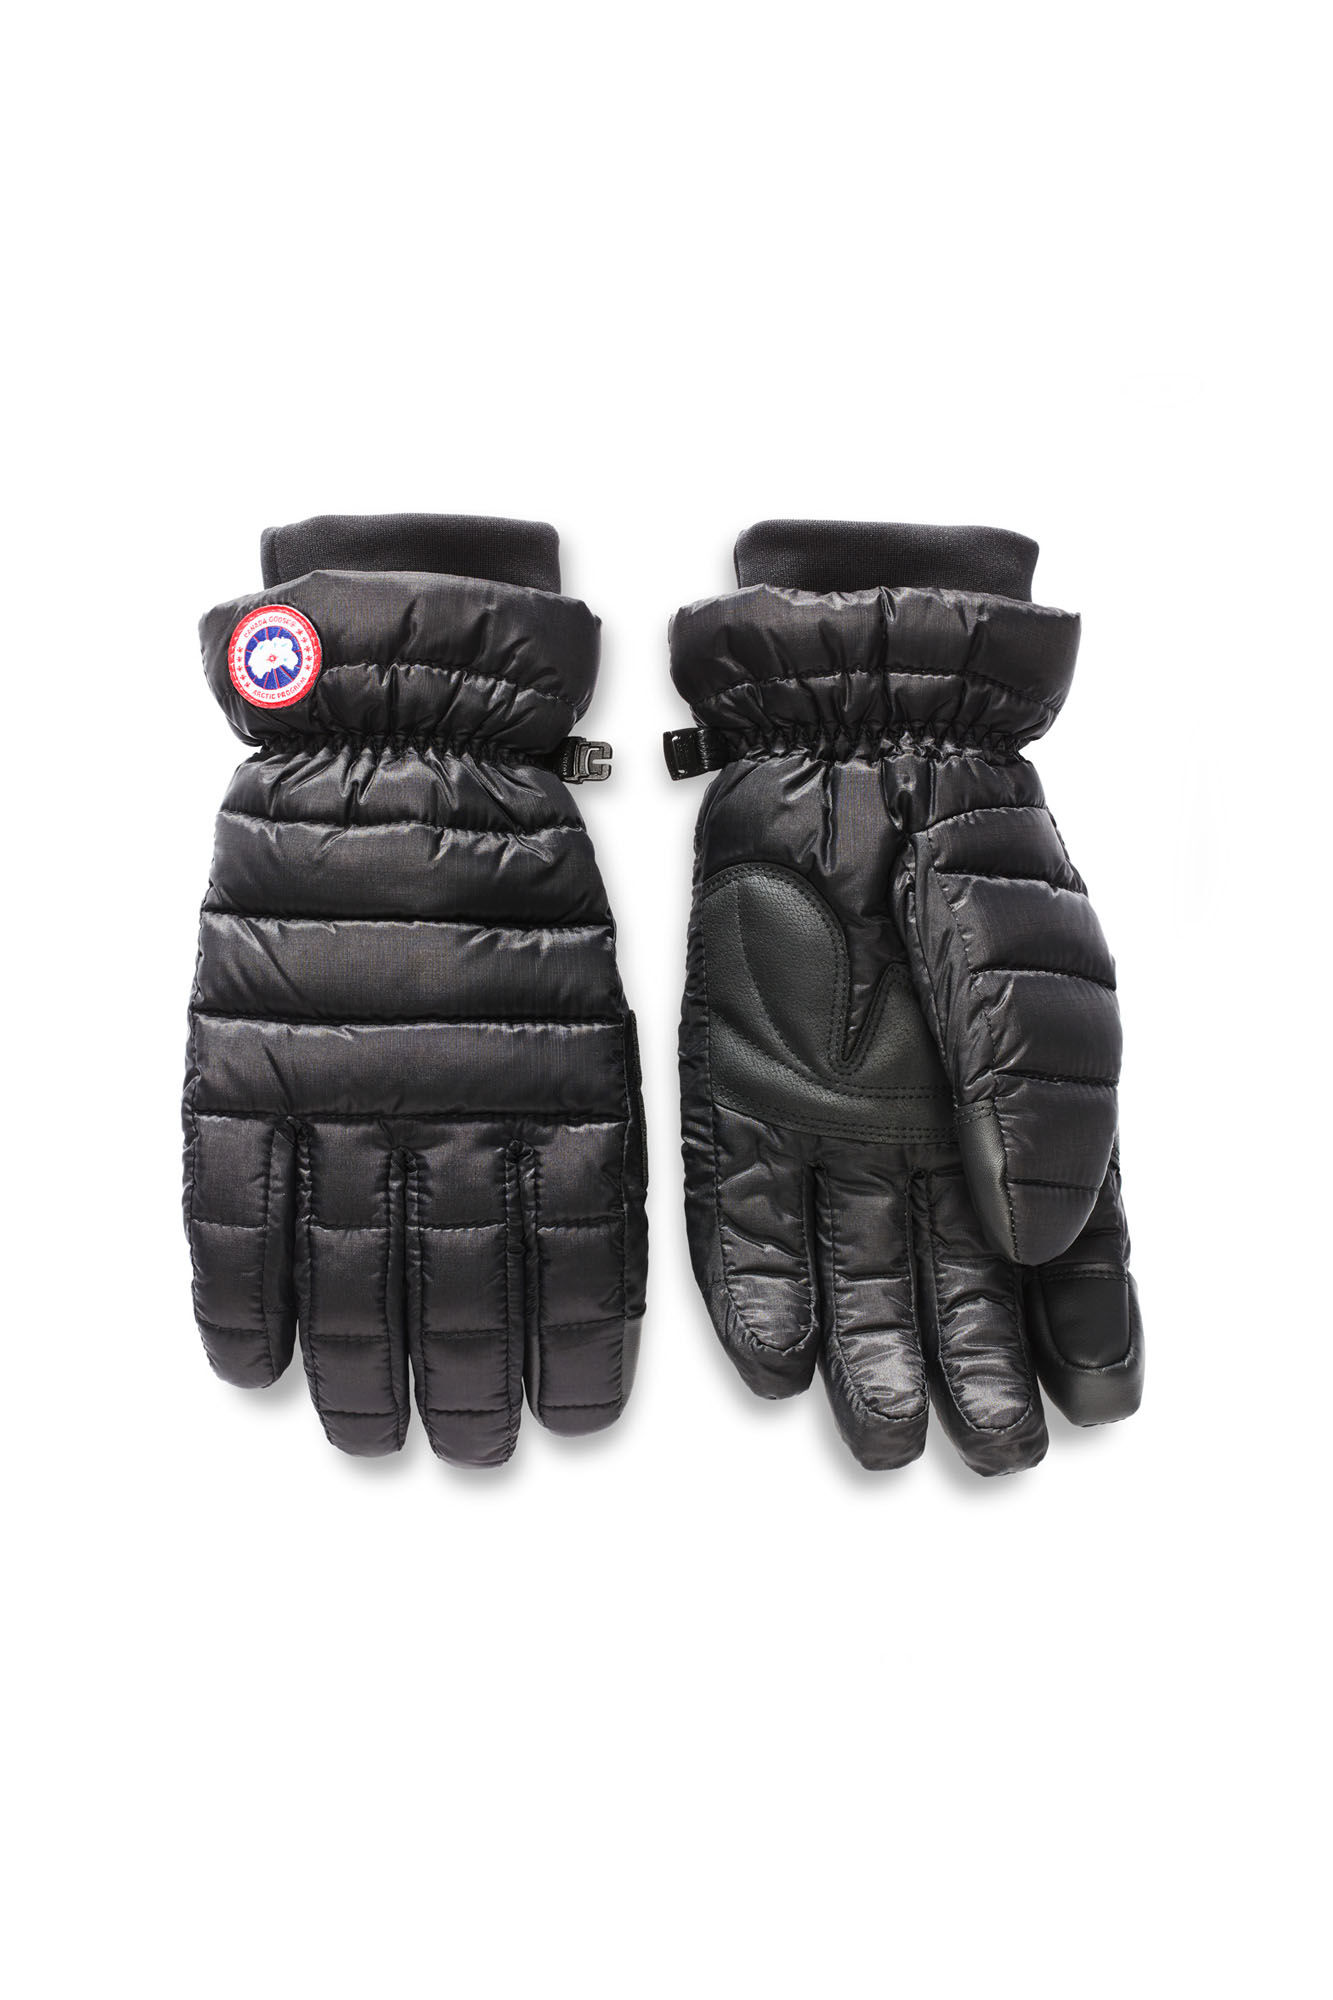 Canada Goose' northern gloves